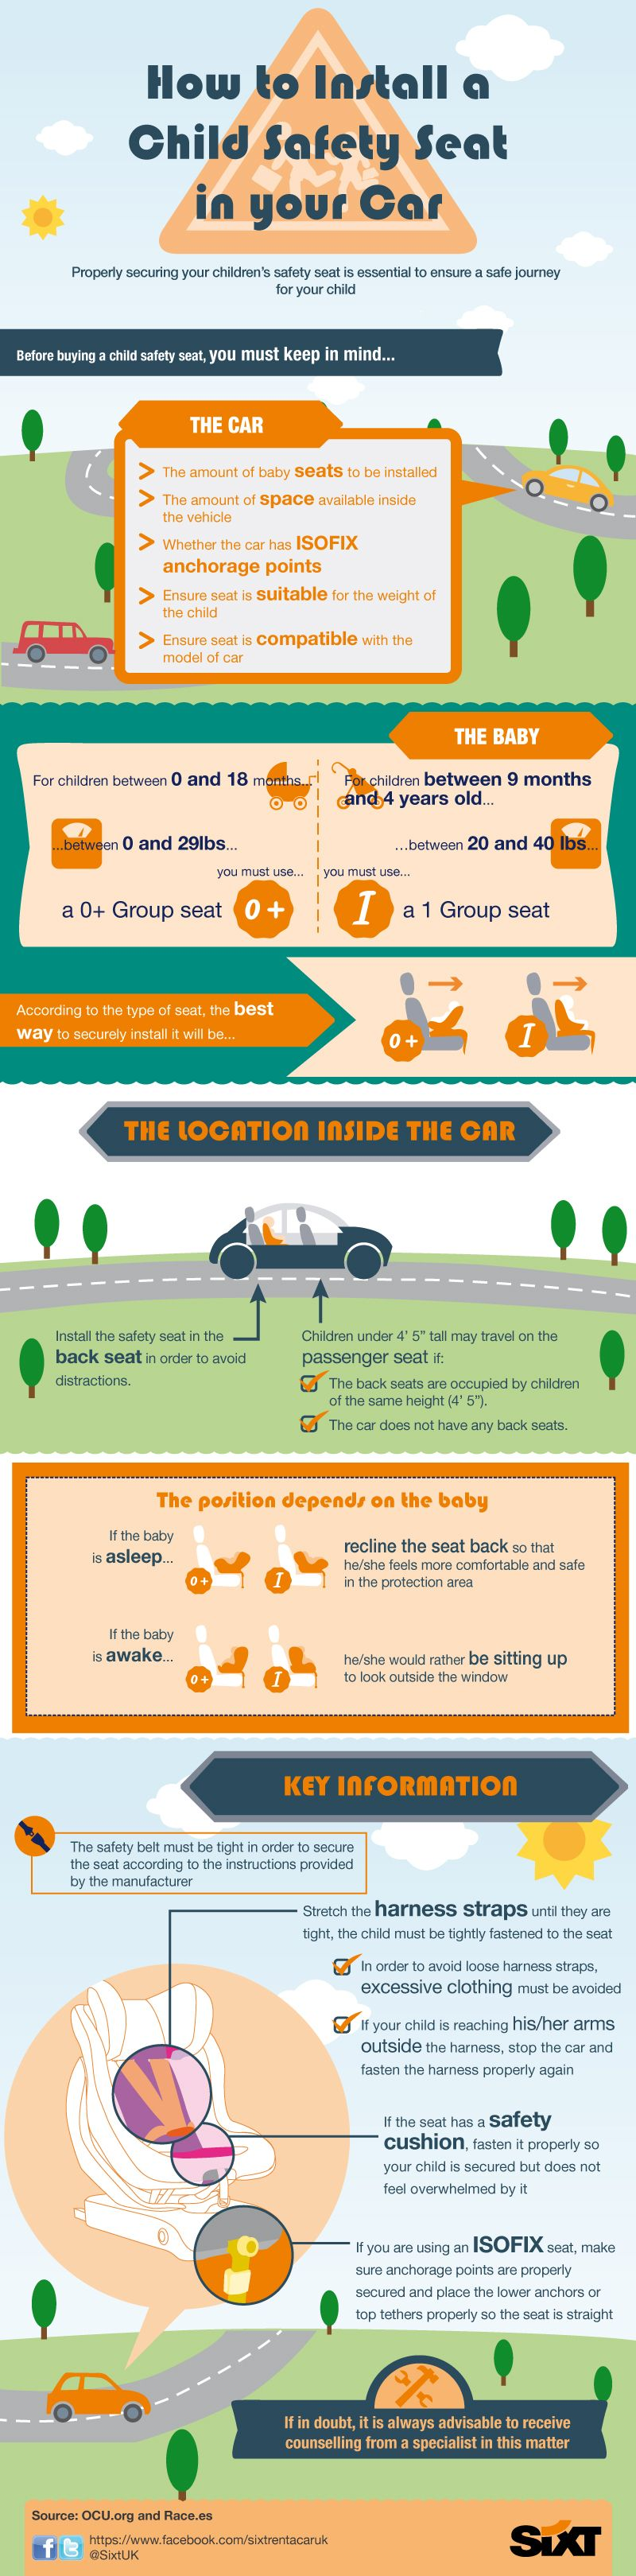 Baby-Seats-in-a-Rental-Car-Infographic-Sixt-UK.jpg